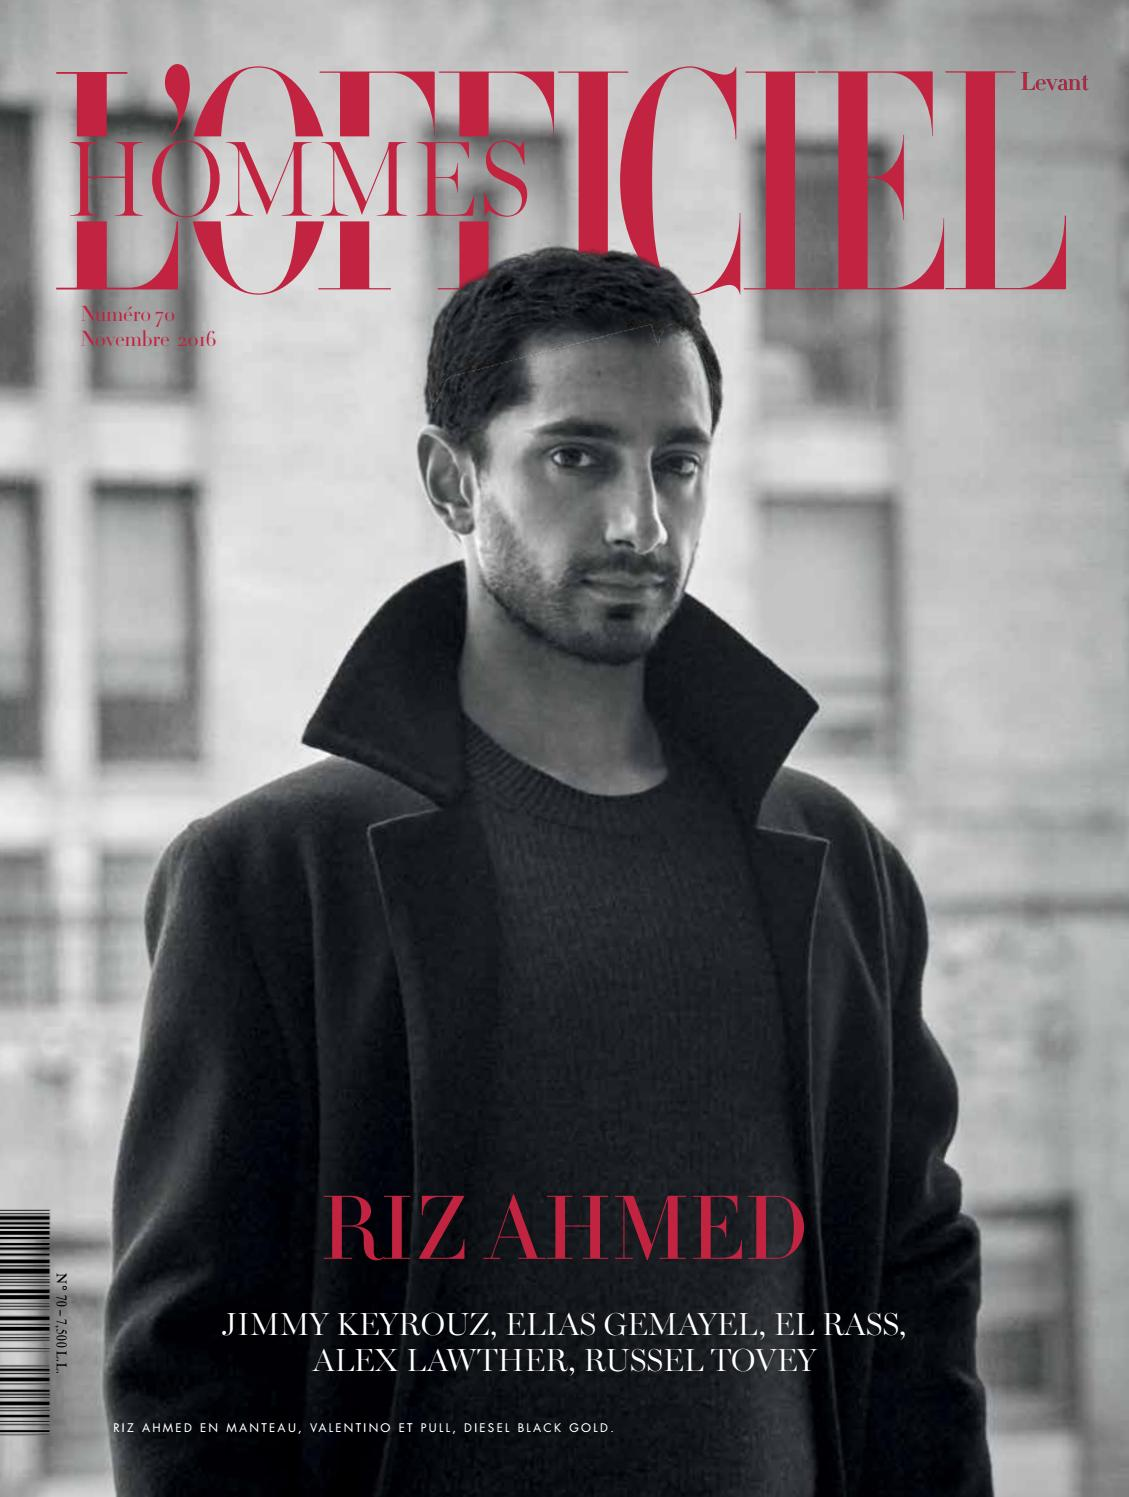 6d10778e2b611 L'Officiel Hommes-Levant, November Issue 70 by L'Officiel Levant - issuu